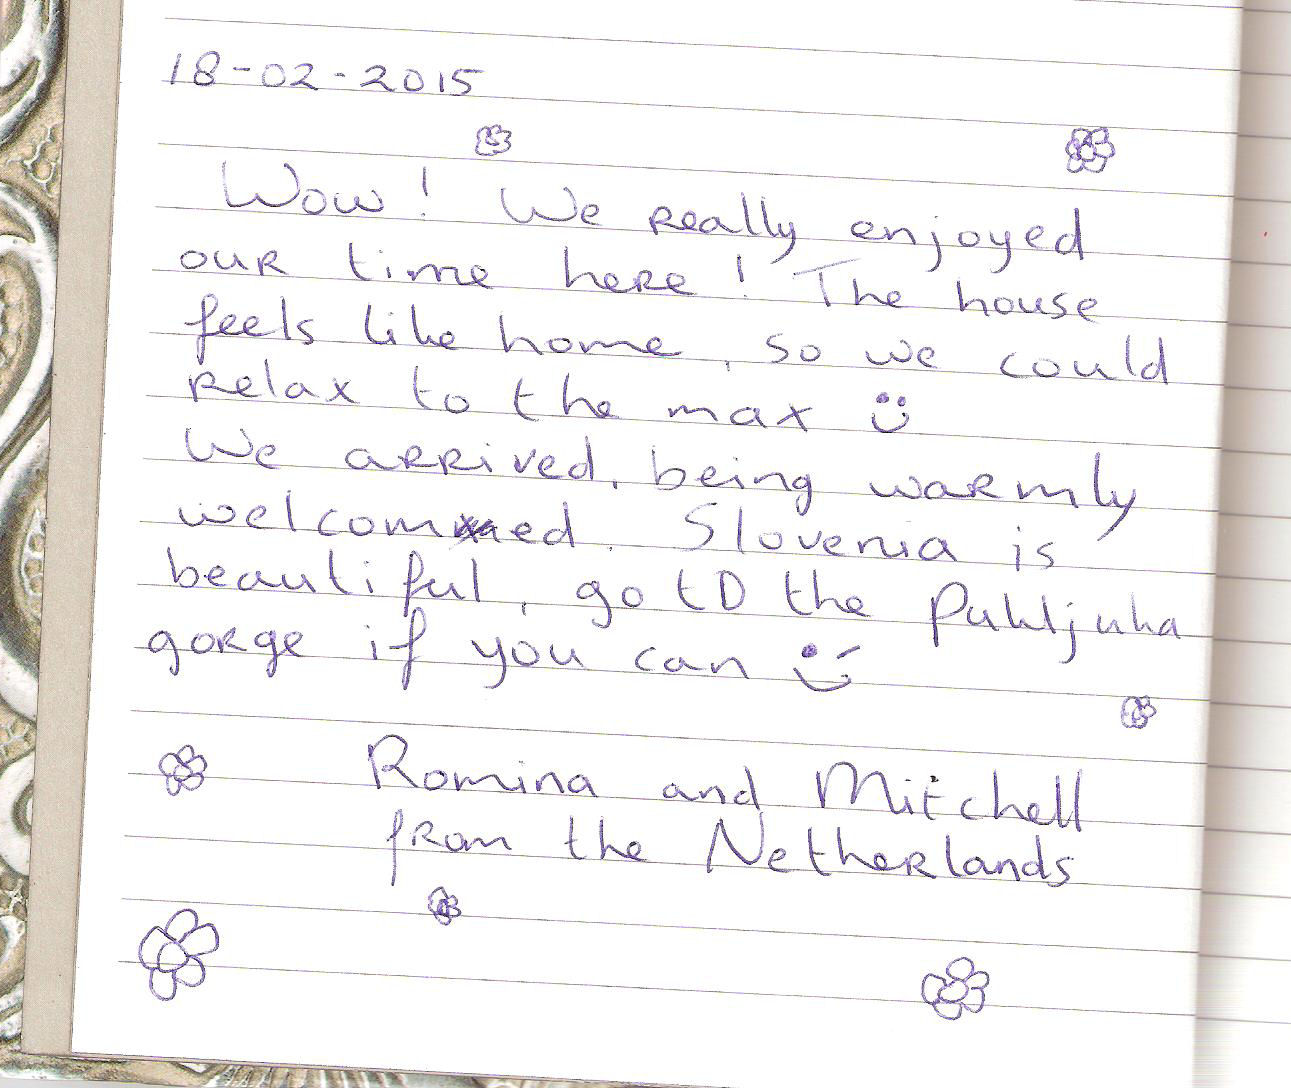 Romina and Mitchell from the Netherlands left us this nice note in the guestbook